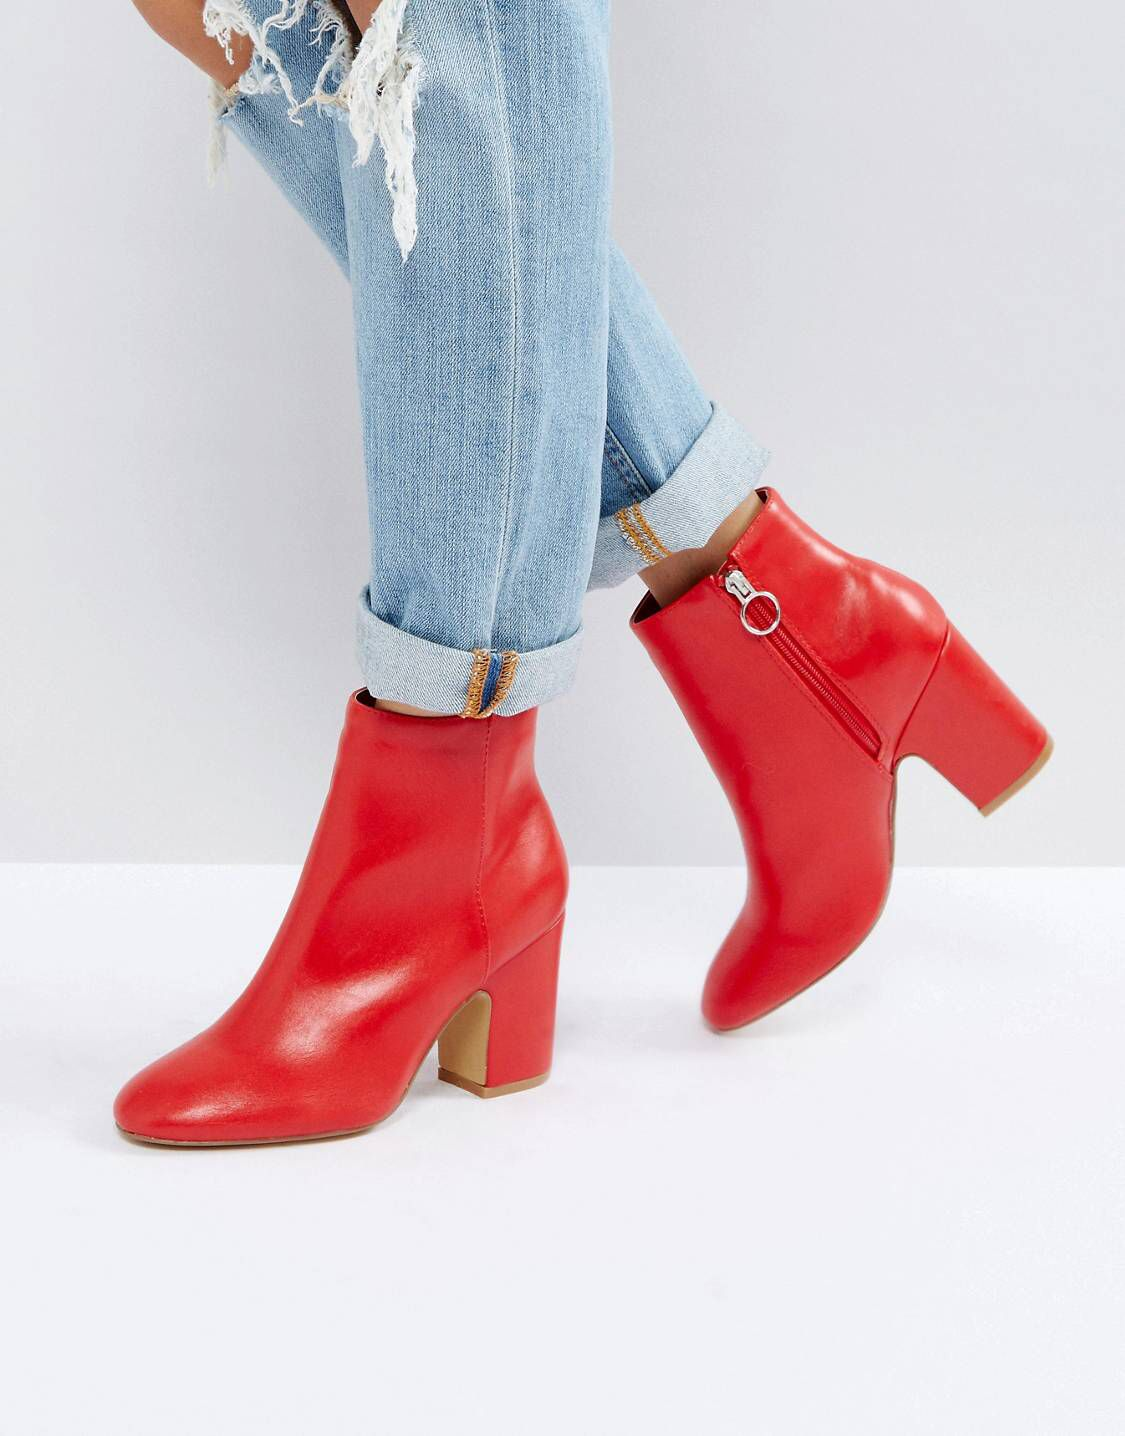 05876059a9c Pimkie Heeled Boots | Red ankle boots | Boots, Red ankle boots ...